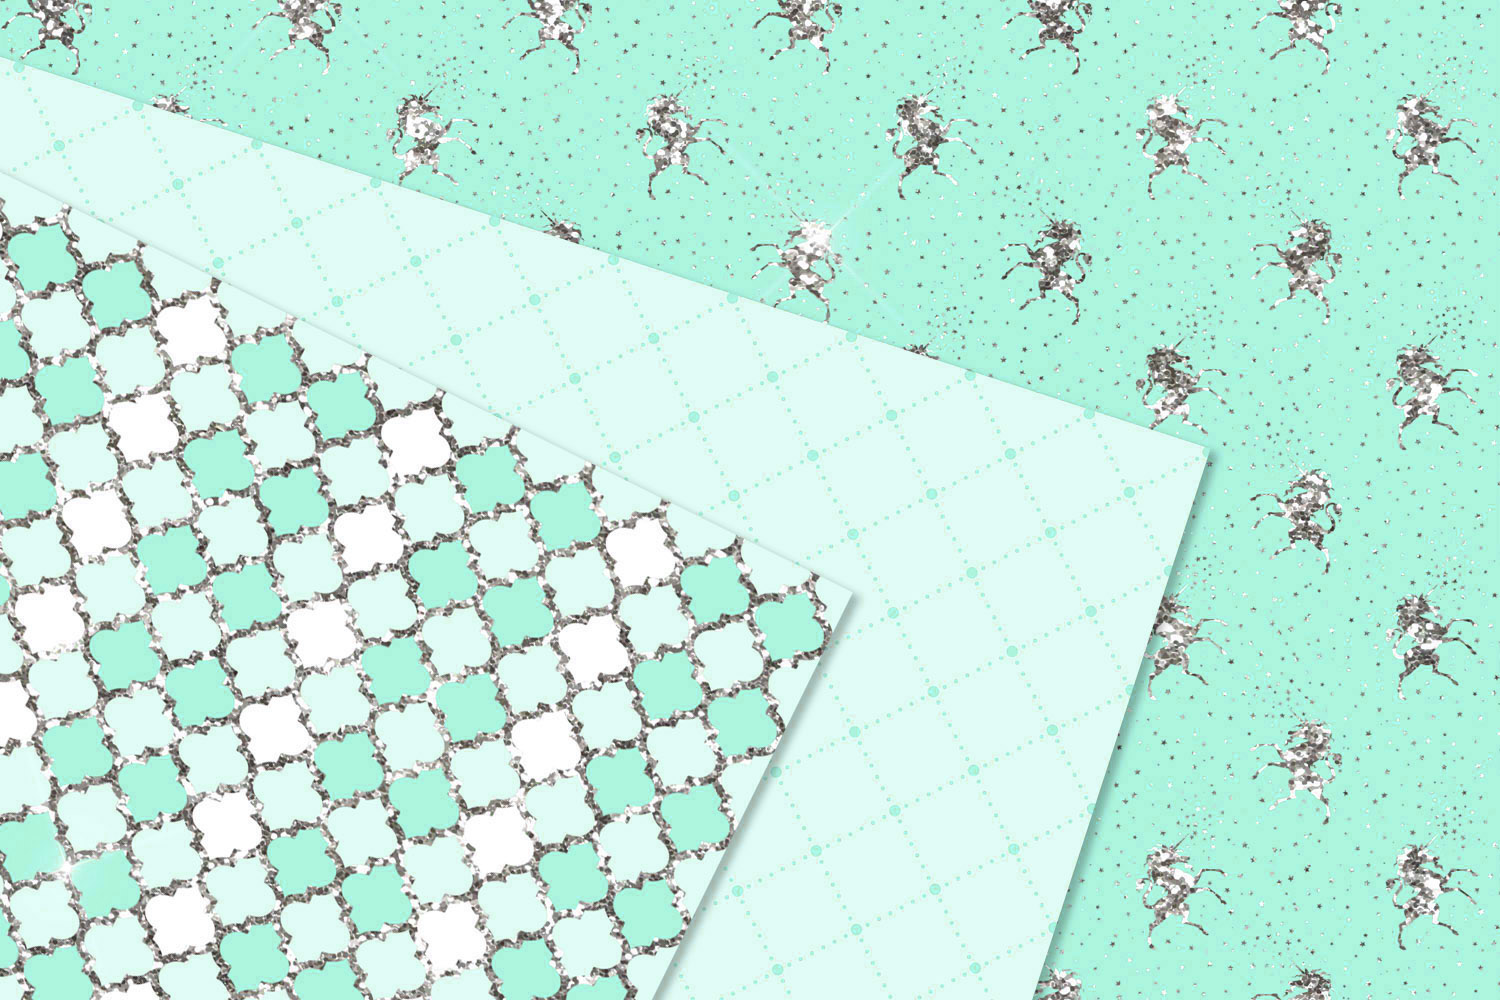 Aqua and Silver Glitter Digital Paper example image 2